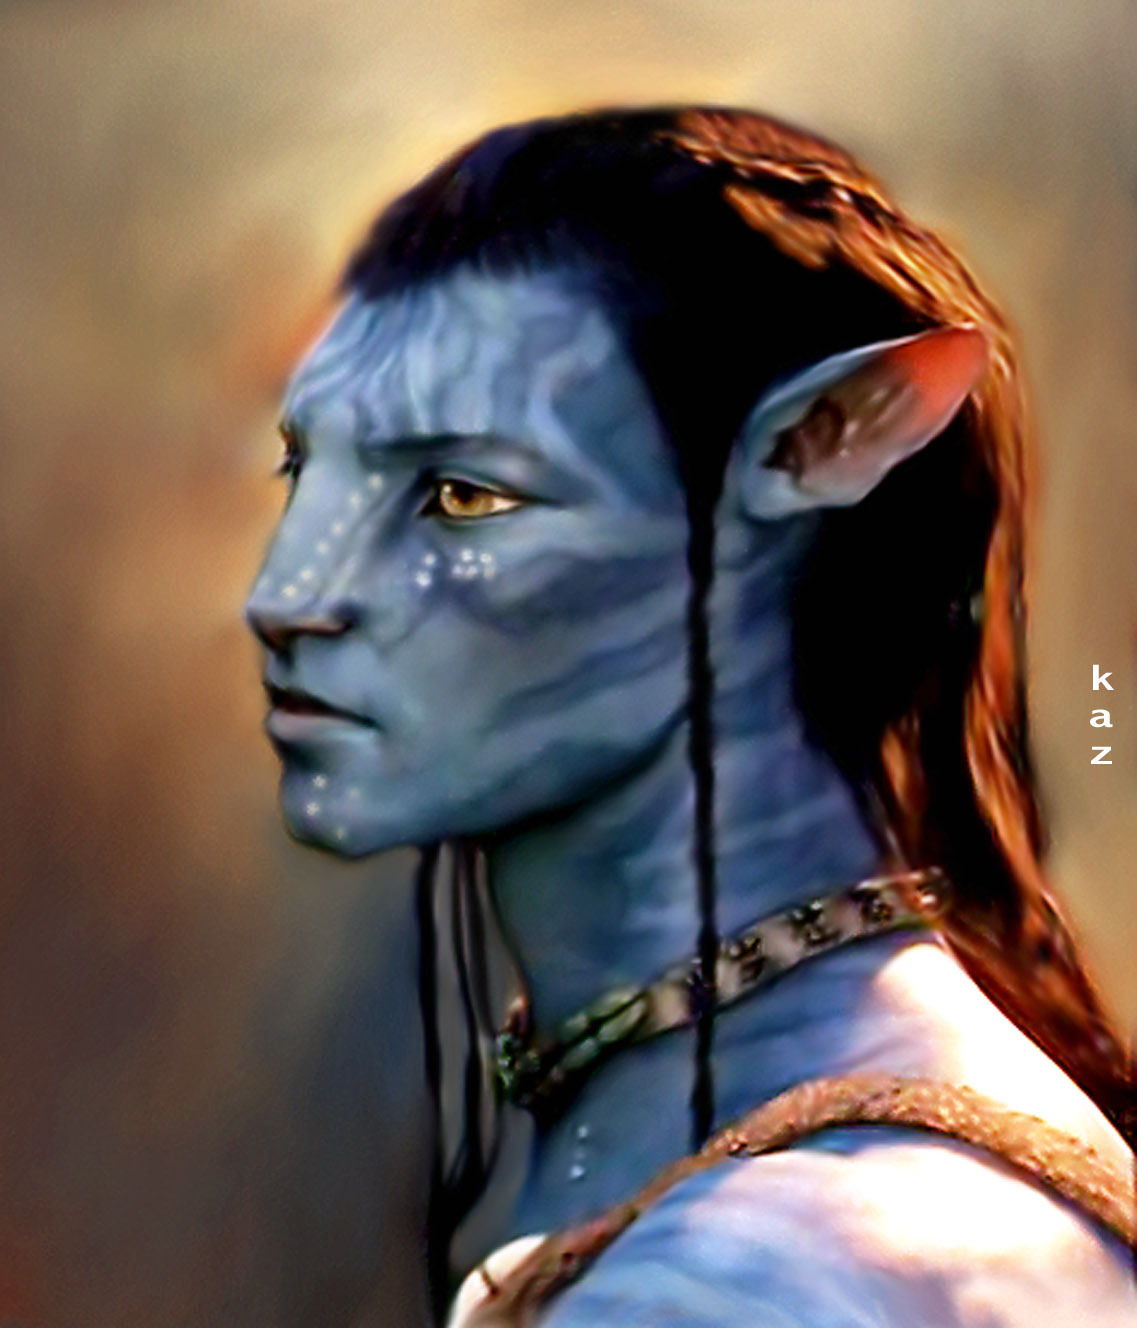 Pictures From Avatar: Fan Art (Jan 04 2013 21:02:24)